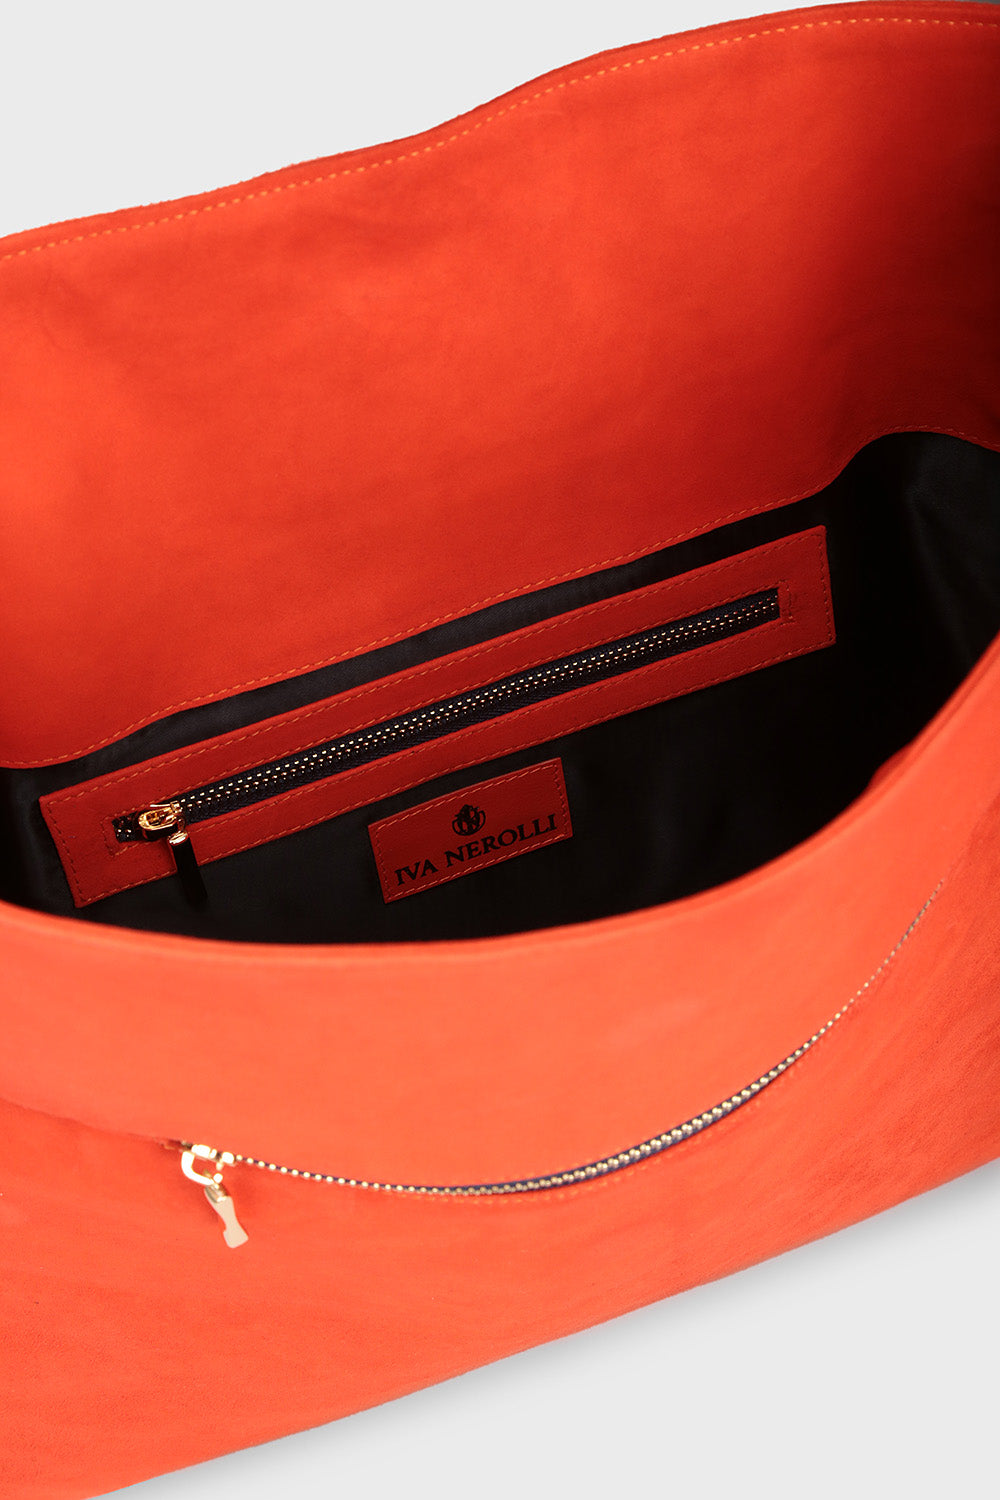 Orange suede clutch